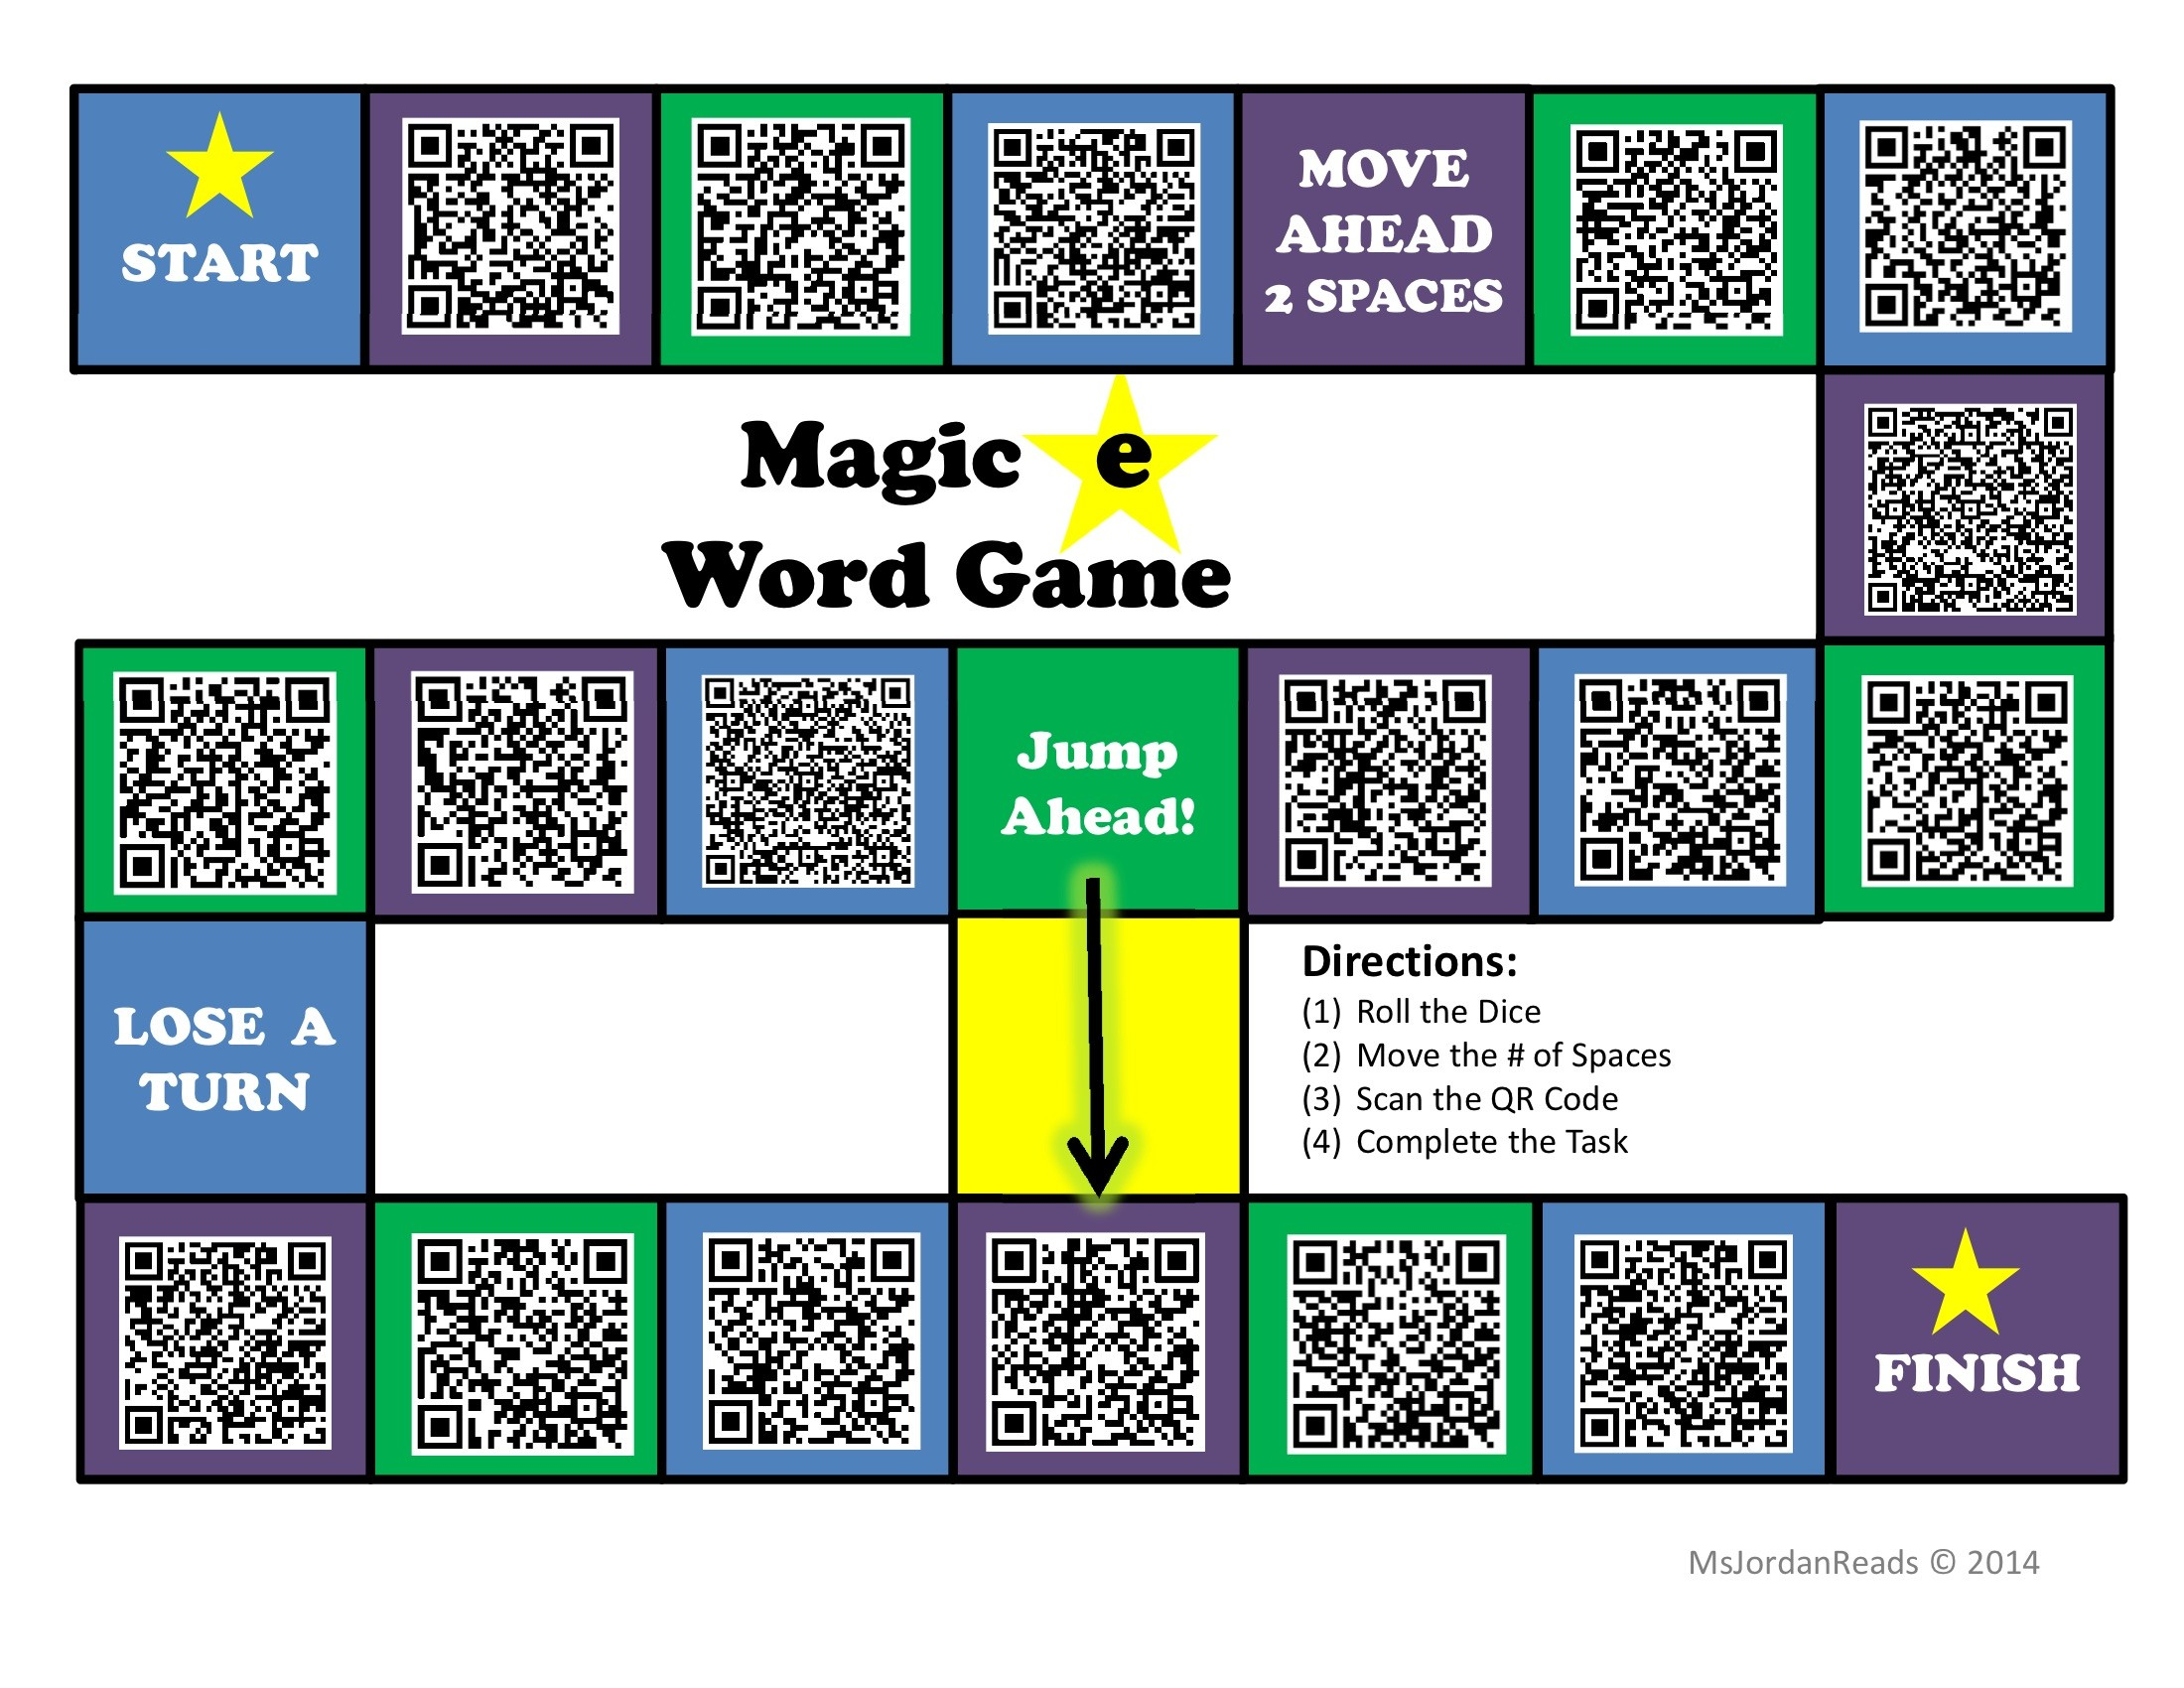 MagicE_QRCode_Game Board 3 3:4:2014